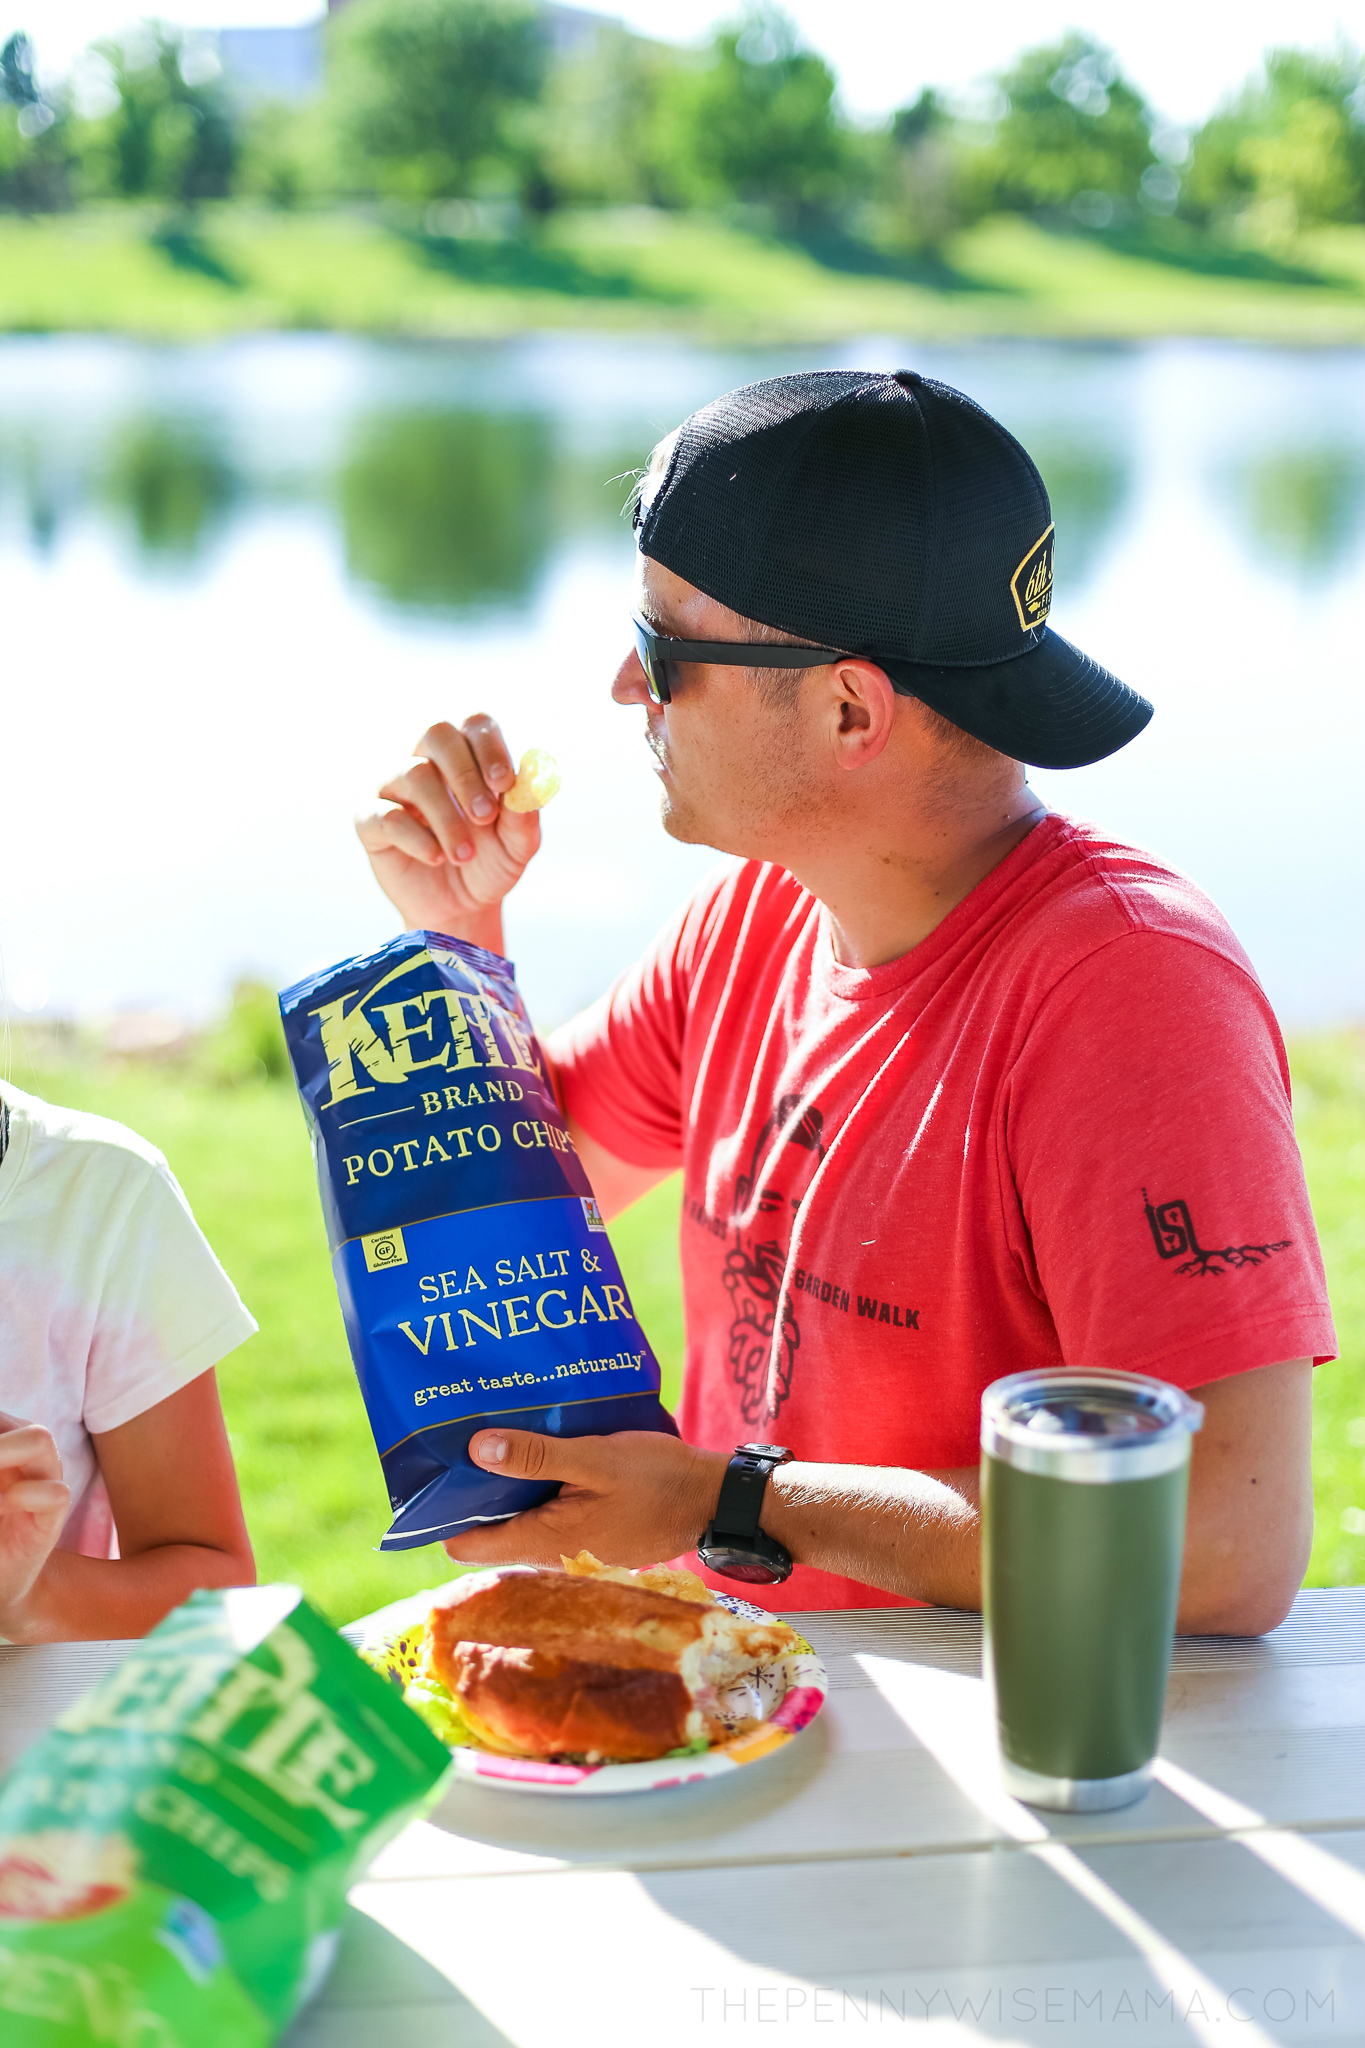 Family Fun with Kettle Chips